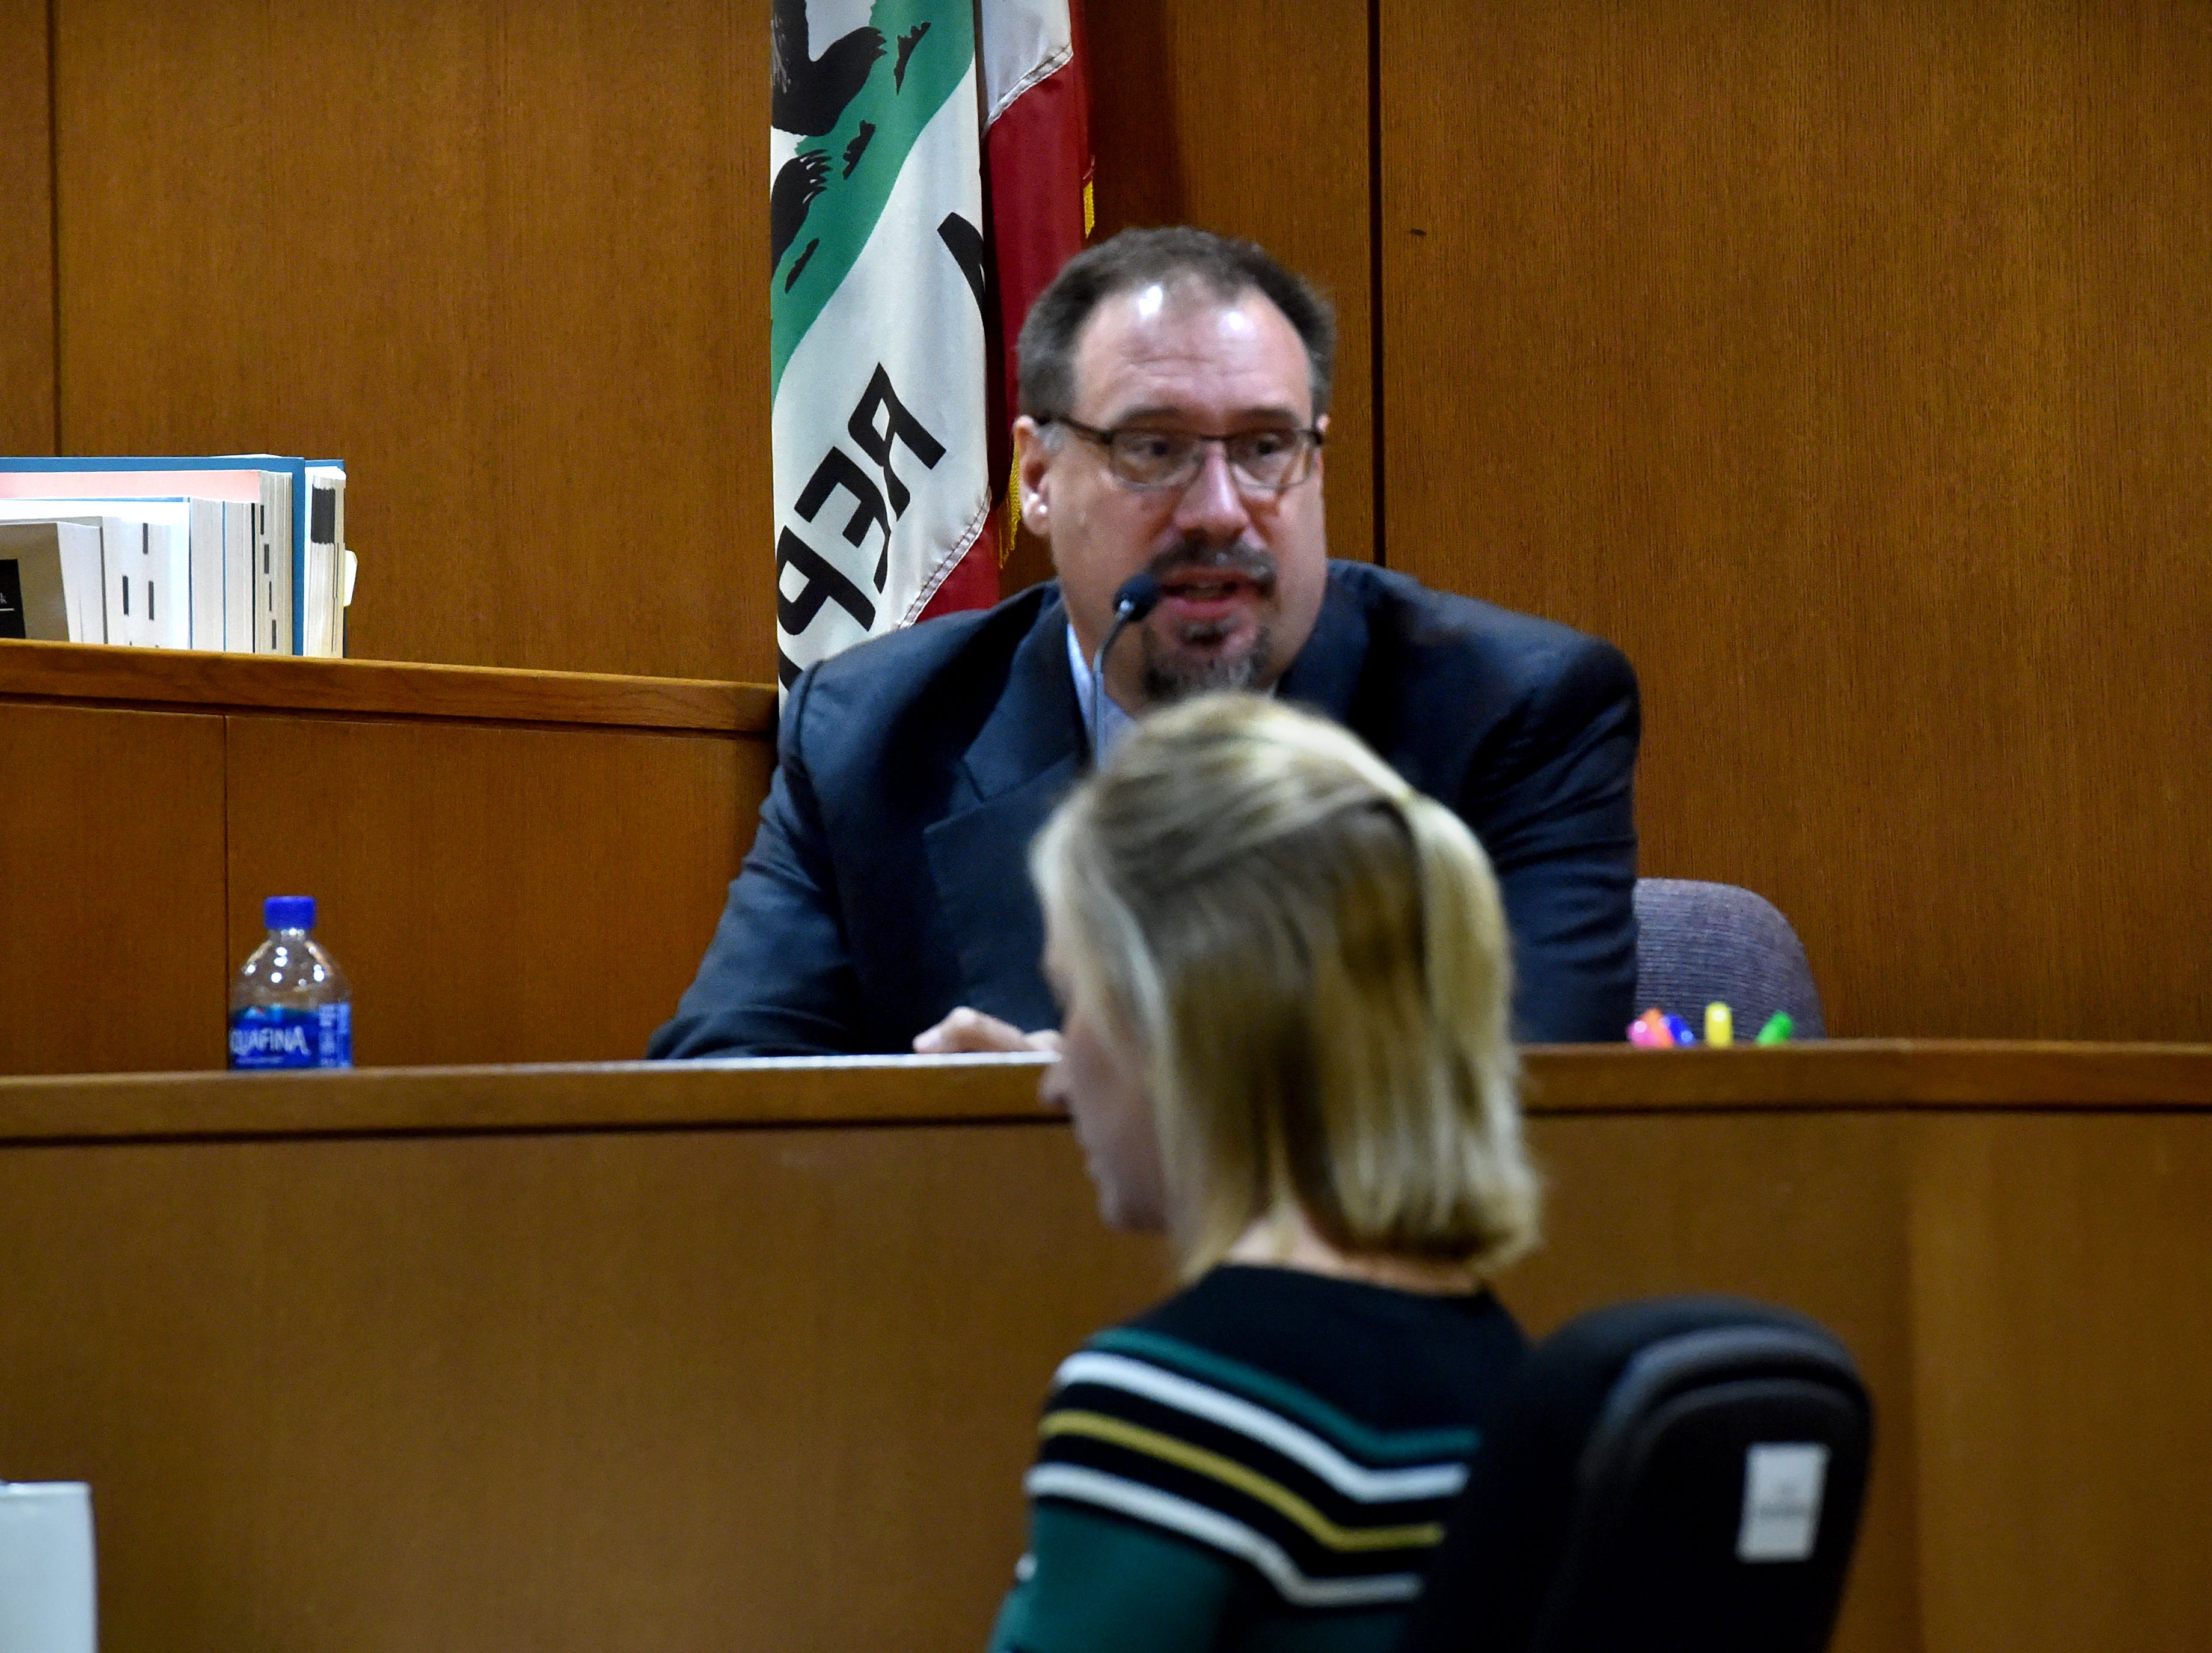 Dr. Joseph Vlaskovits offers defense testimony about postpartum mental health disorders during the trial of Mayra Chavez on Thursday. Chavez has pleaded not guilty to second-degree murder charges in the death of her 3-year-old daughter Kimberly Lopez.